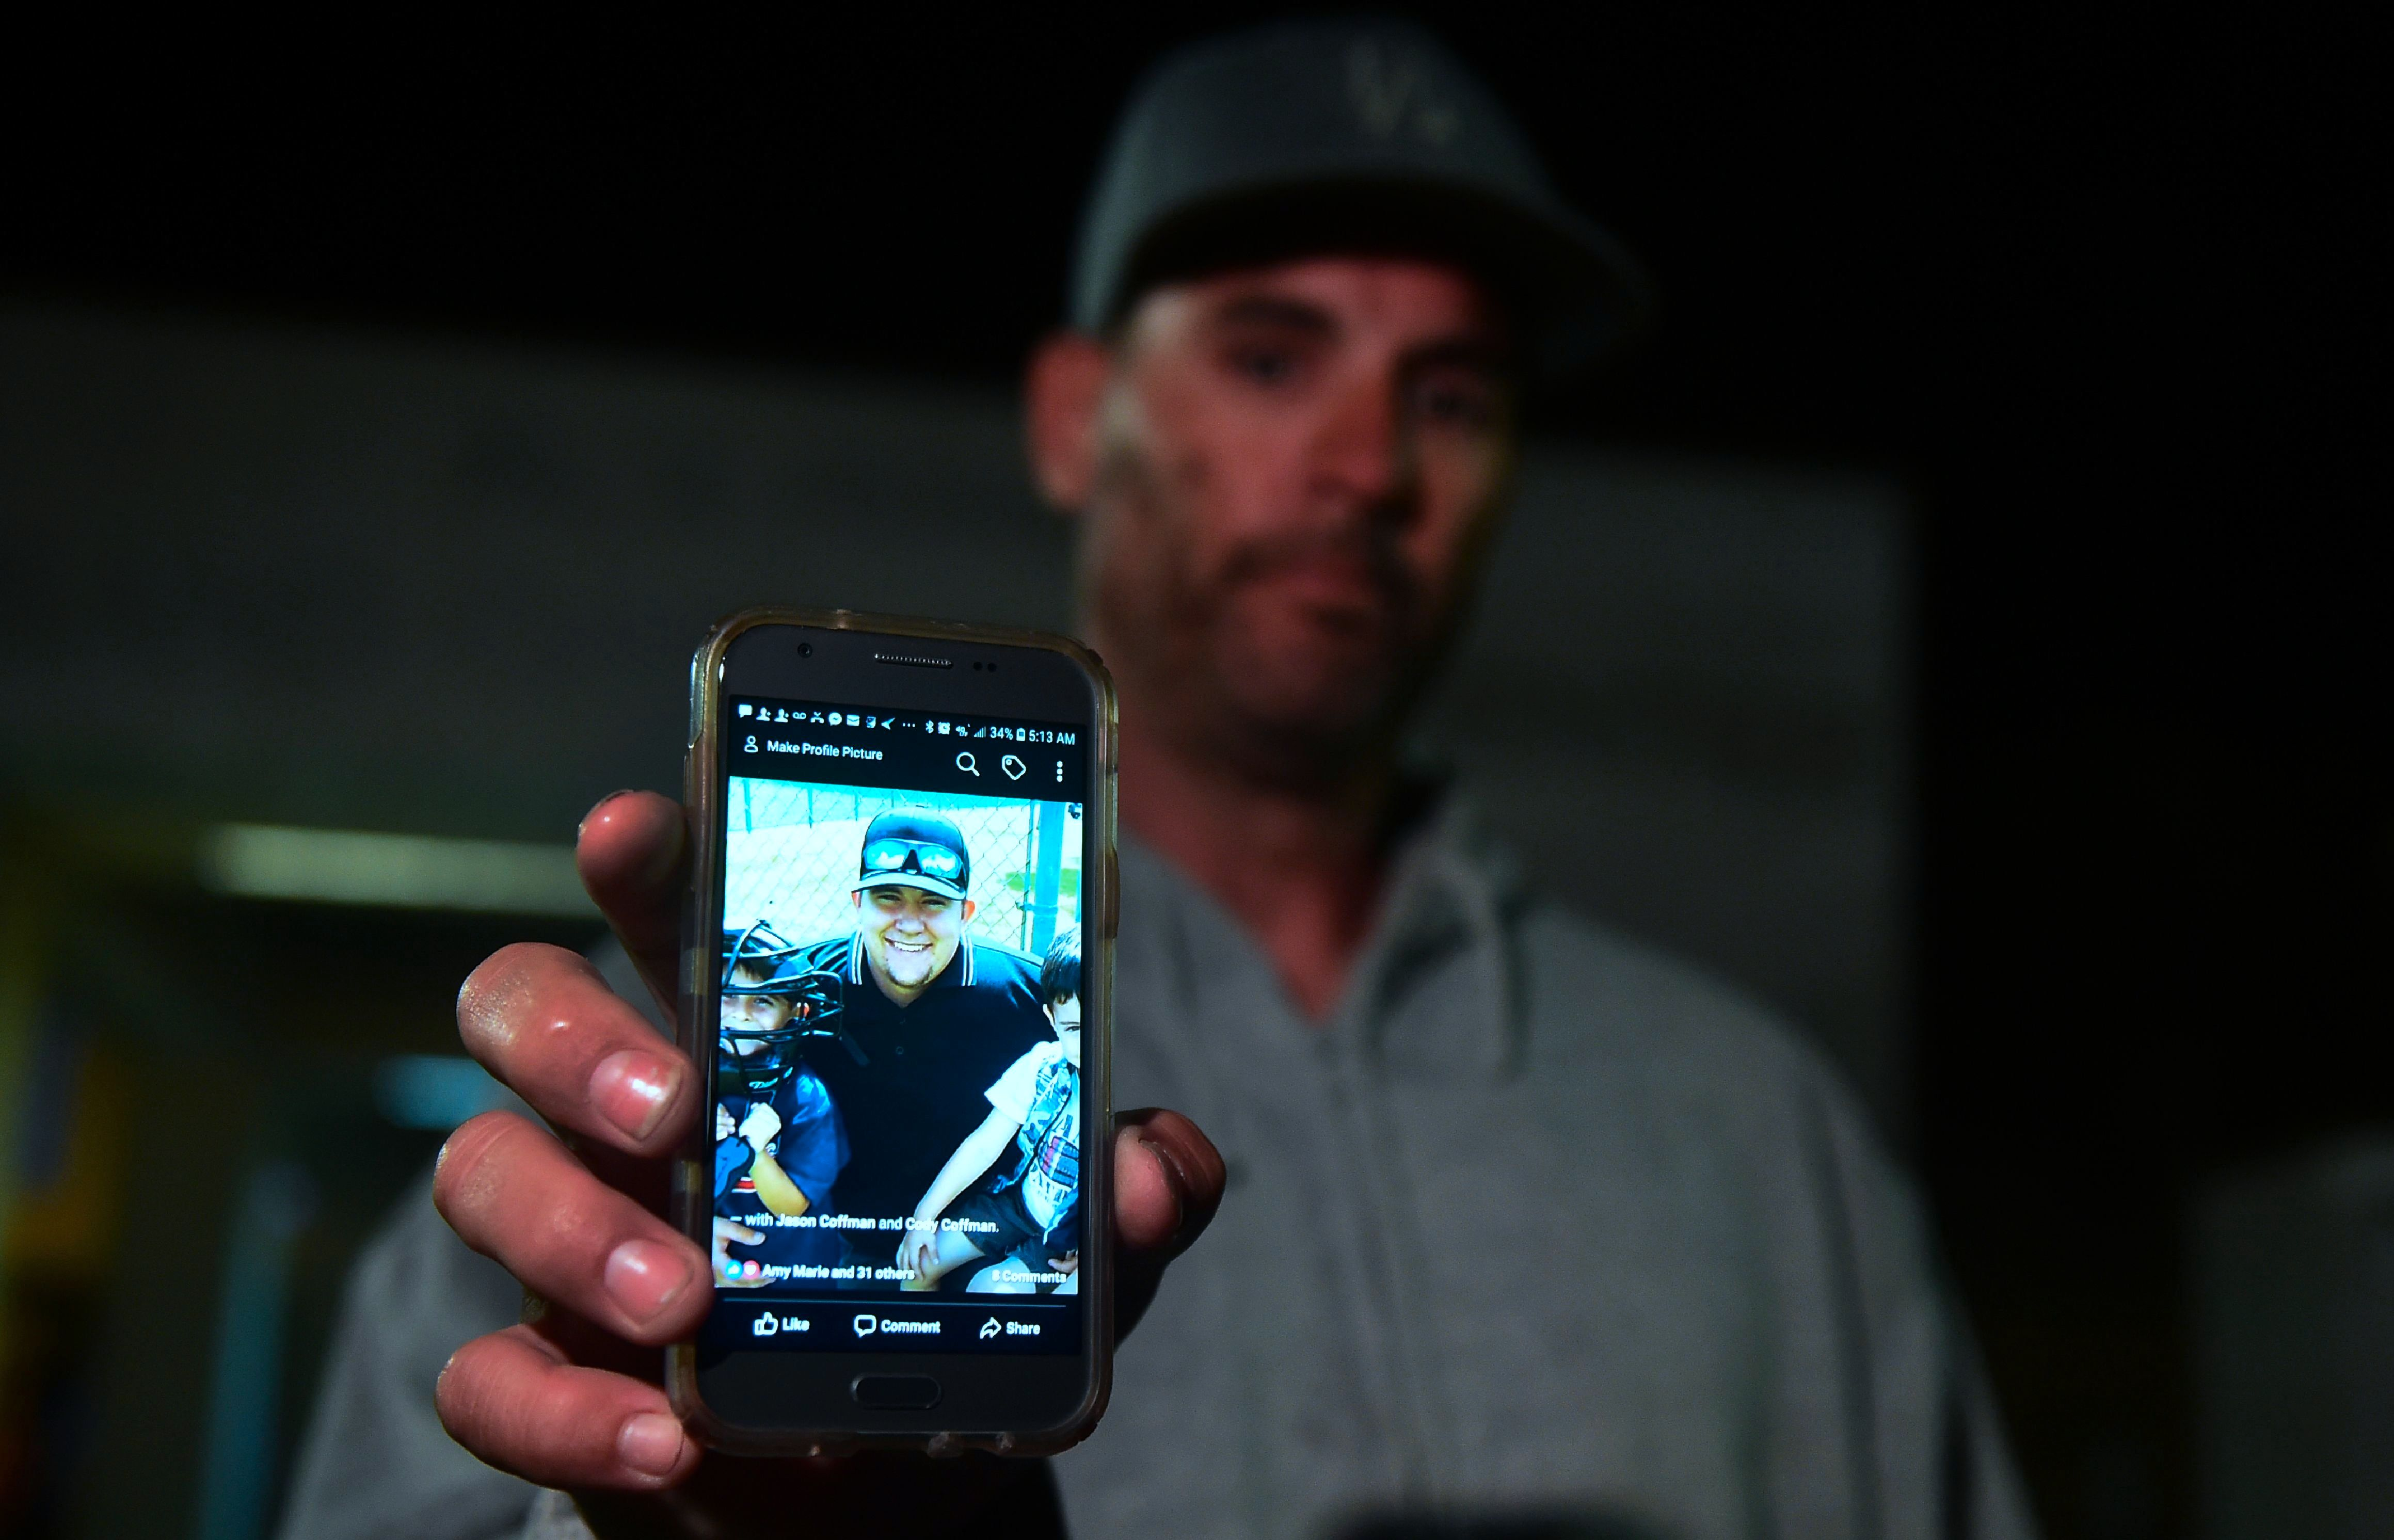 Jason Coffman displays a photo of his son Cody, who was shot and killed at the Borderline Bar & Grill on Nov. 7, 2018.